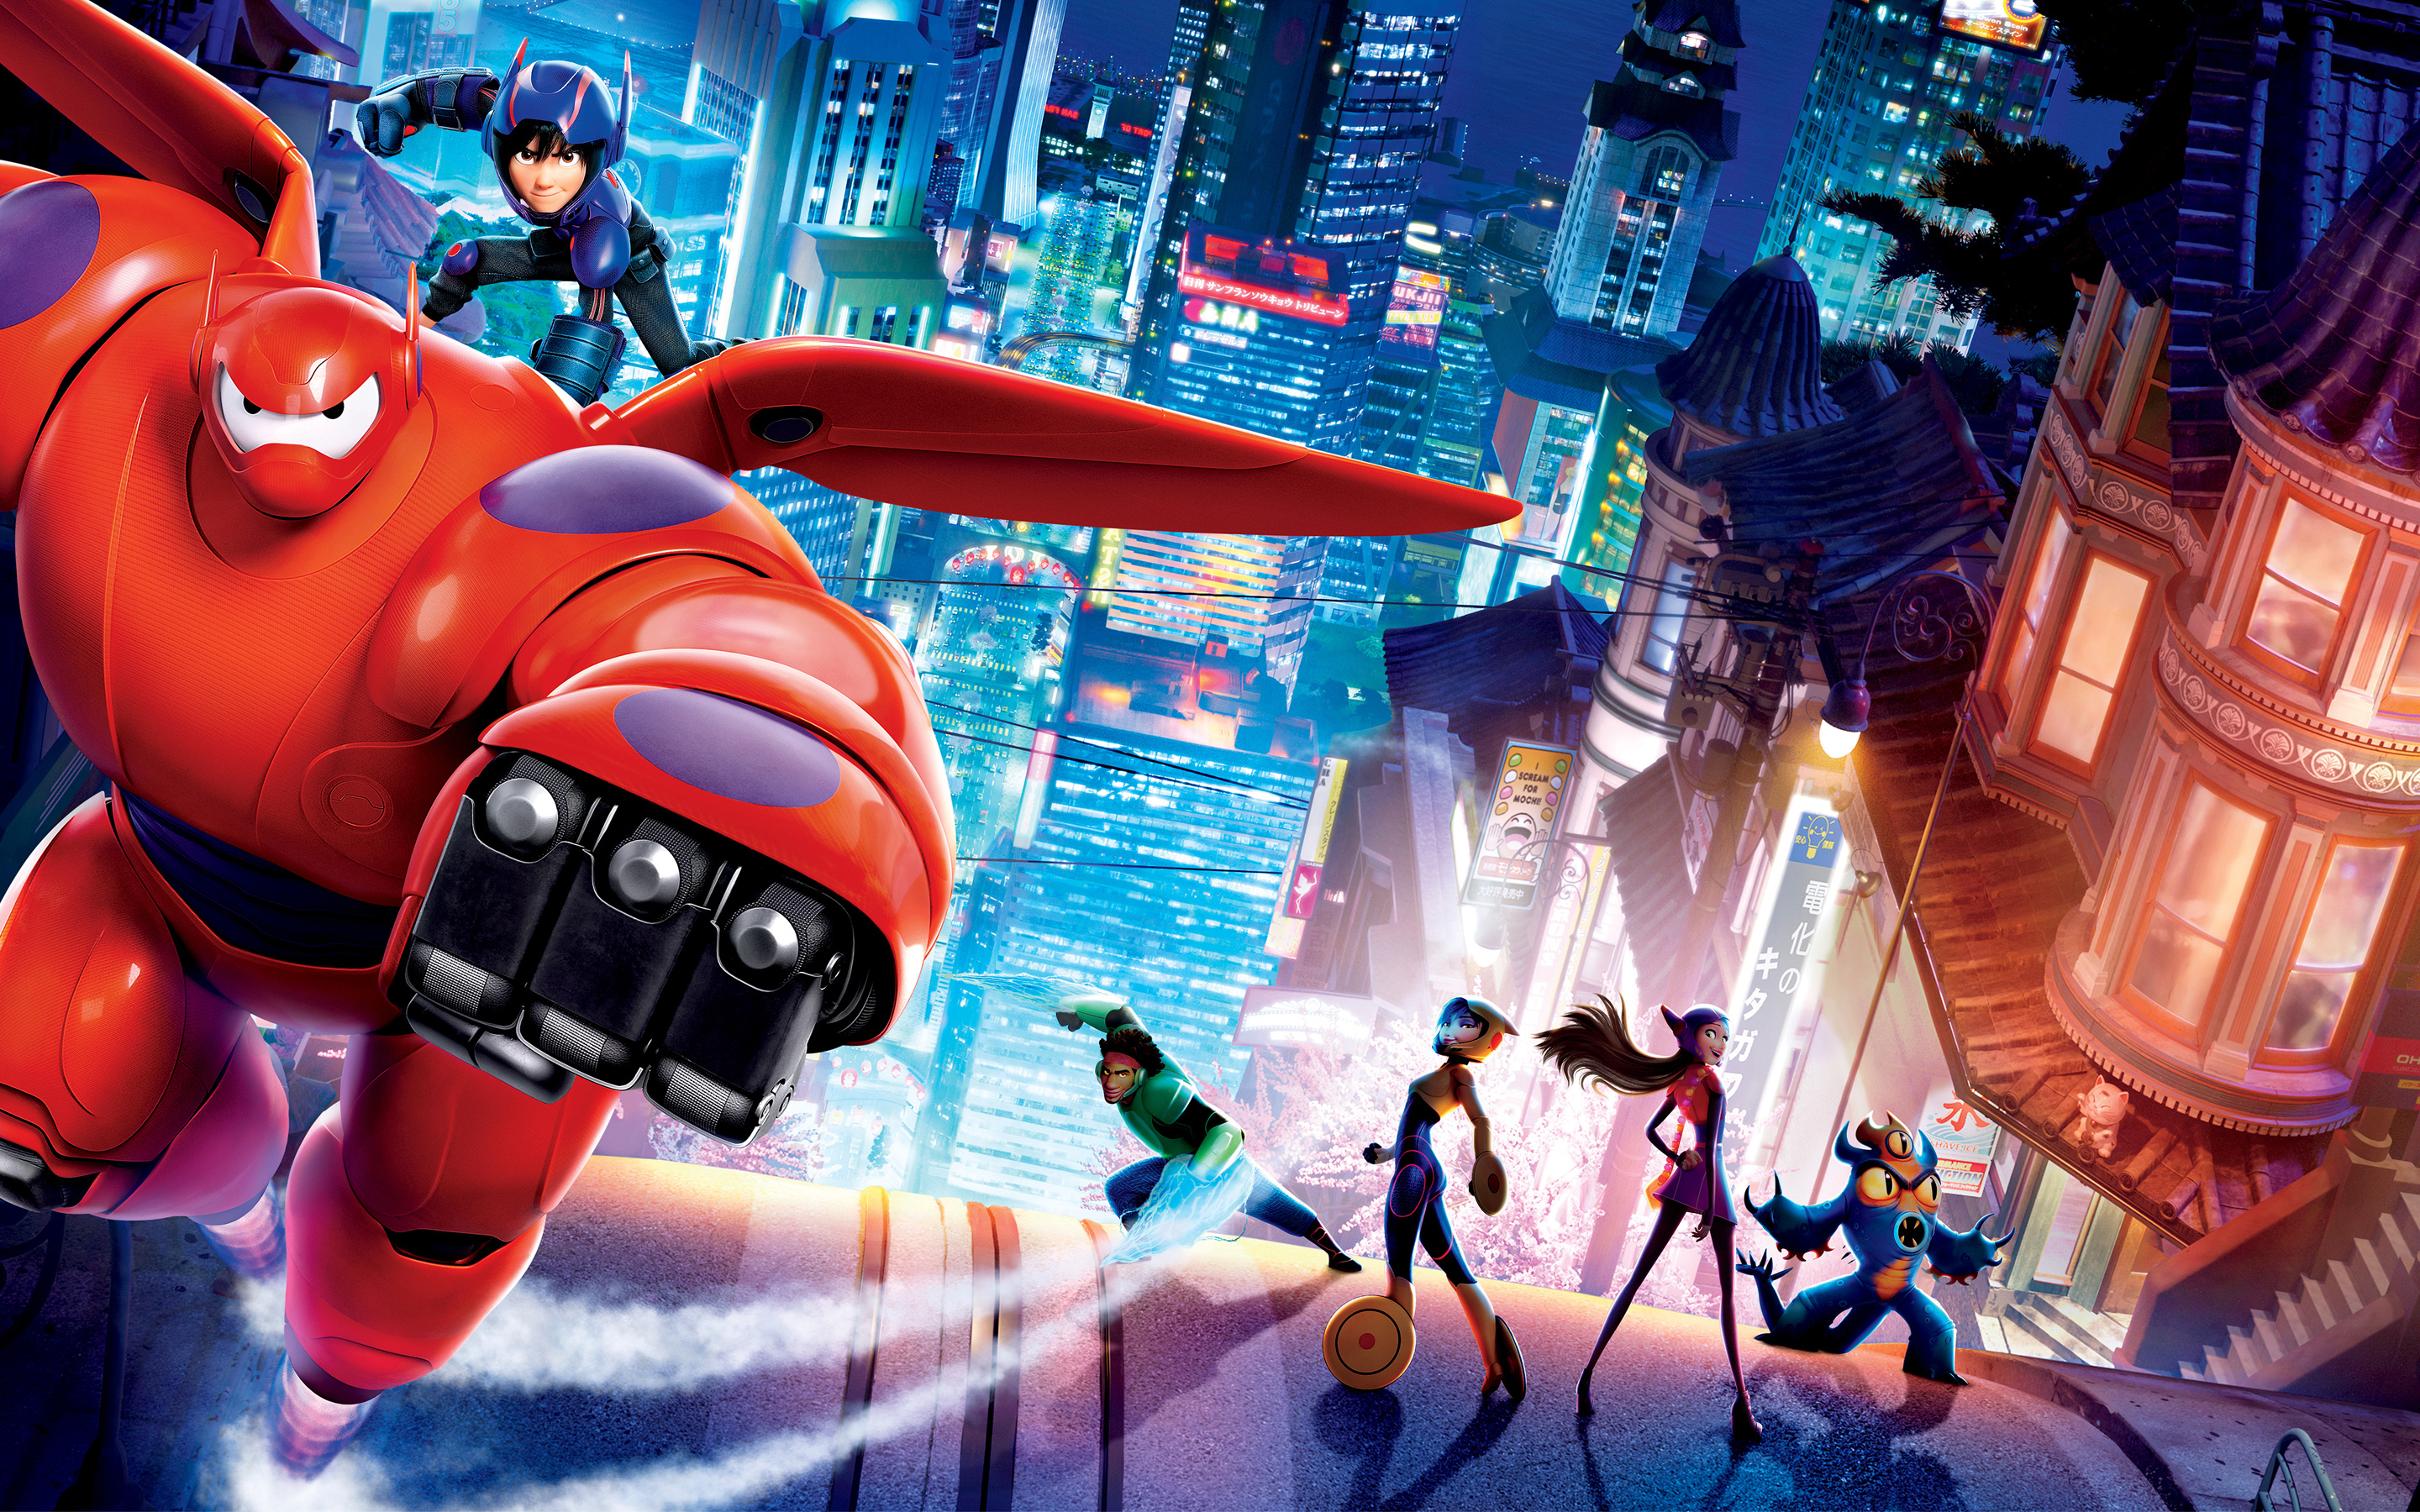 Big Hero 6, movies, disney, marvel, Big Hero 6, animation, animated, heroes, superhero